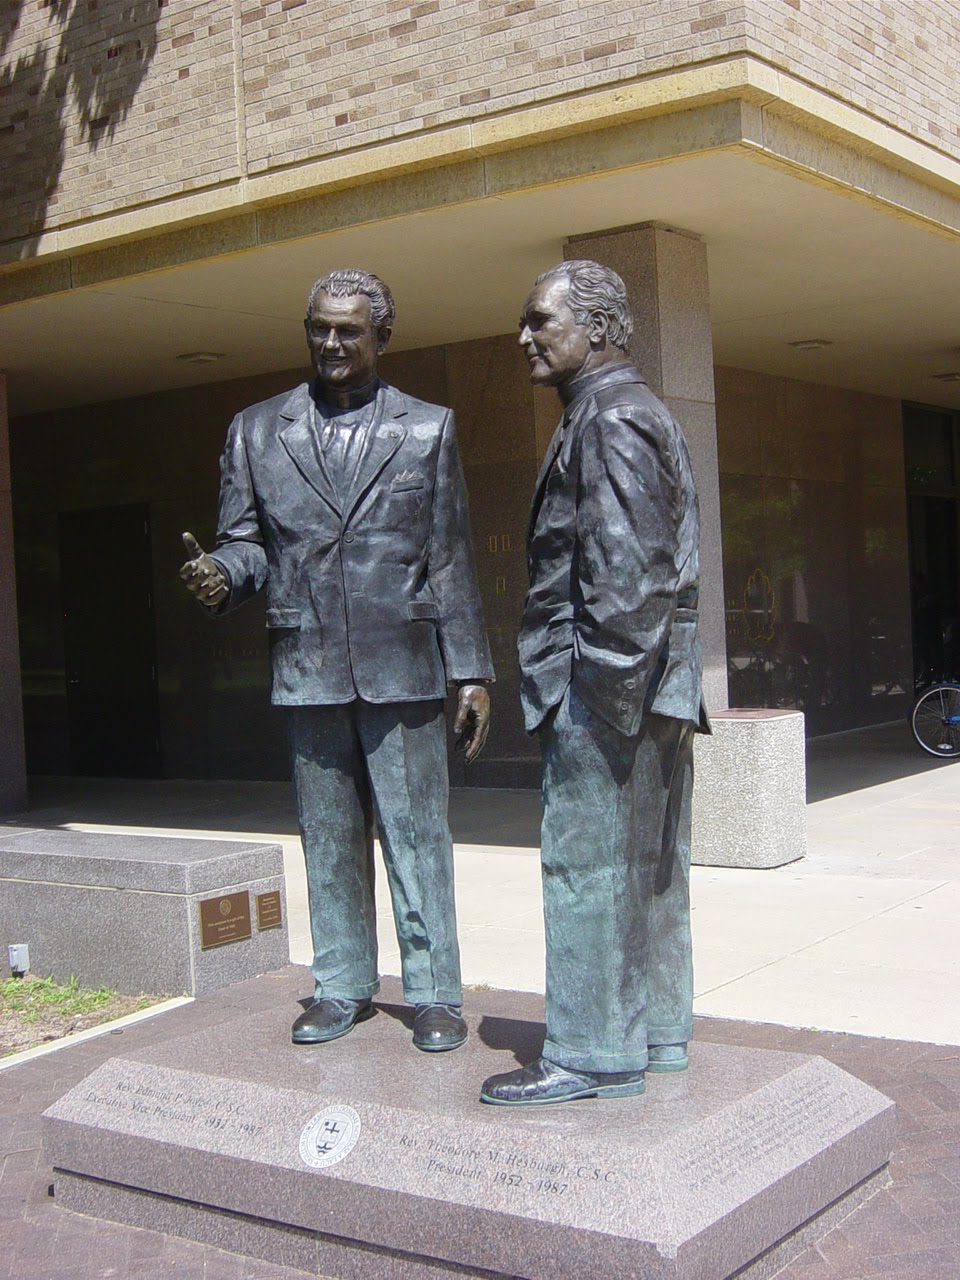 Fathers Joyce and Hesburgh